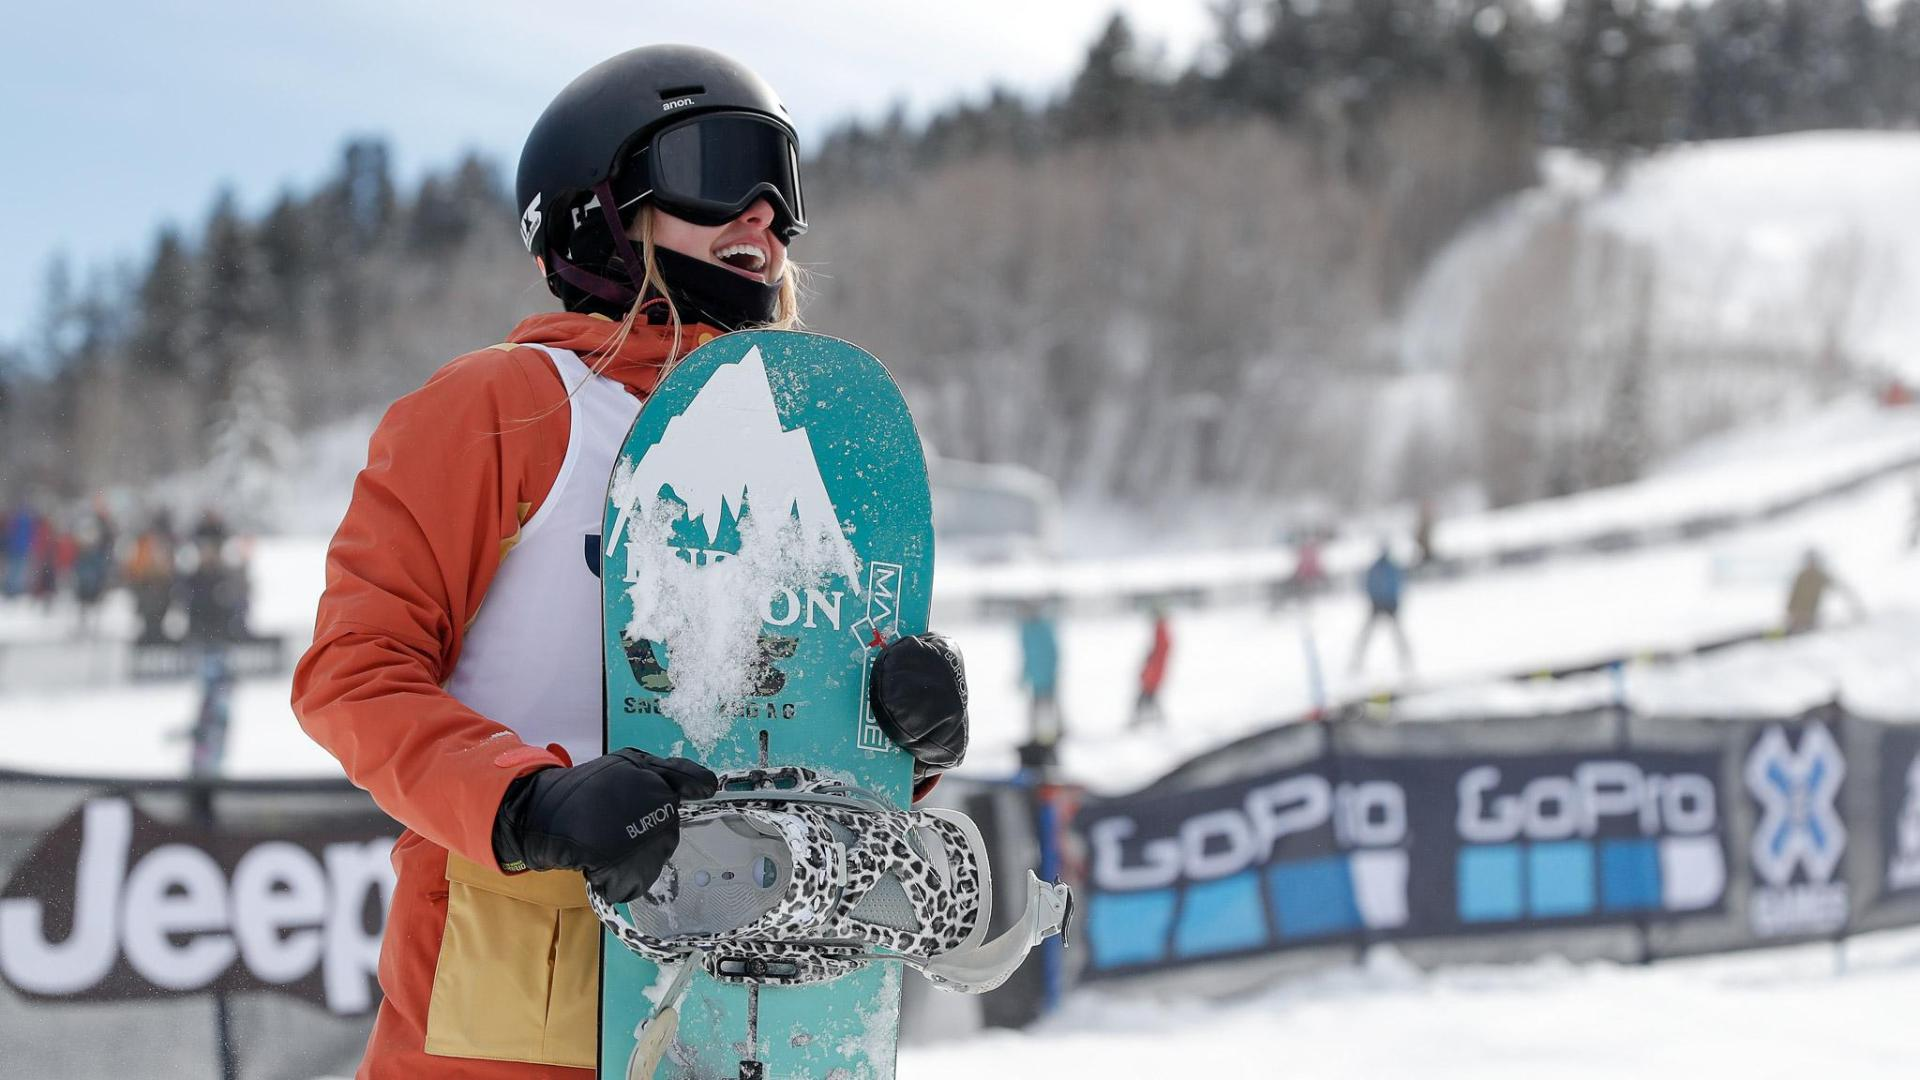 Canada's strong X Games showing continues with Beaulieu-Marchand bronze